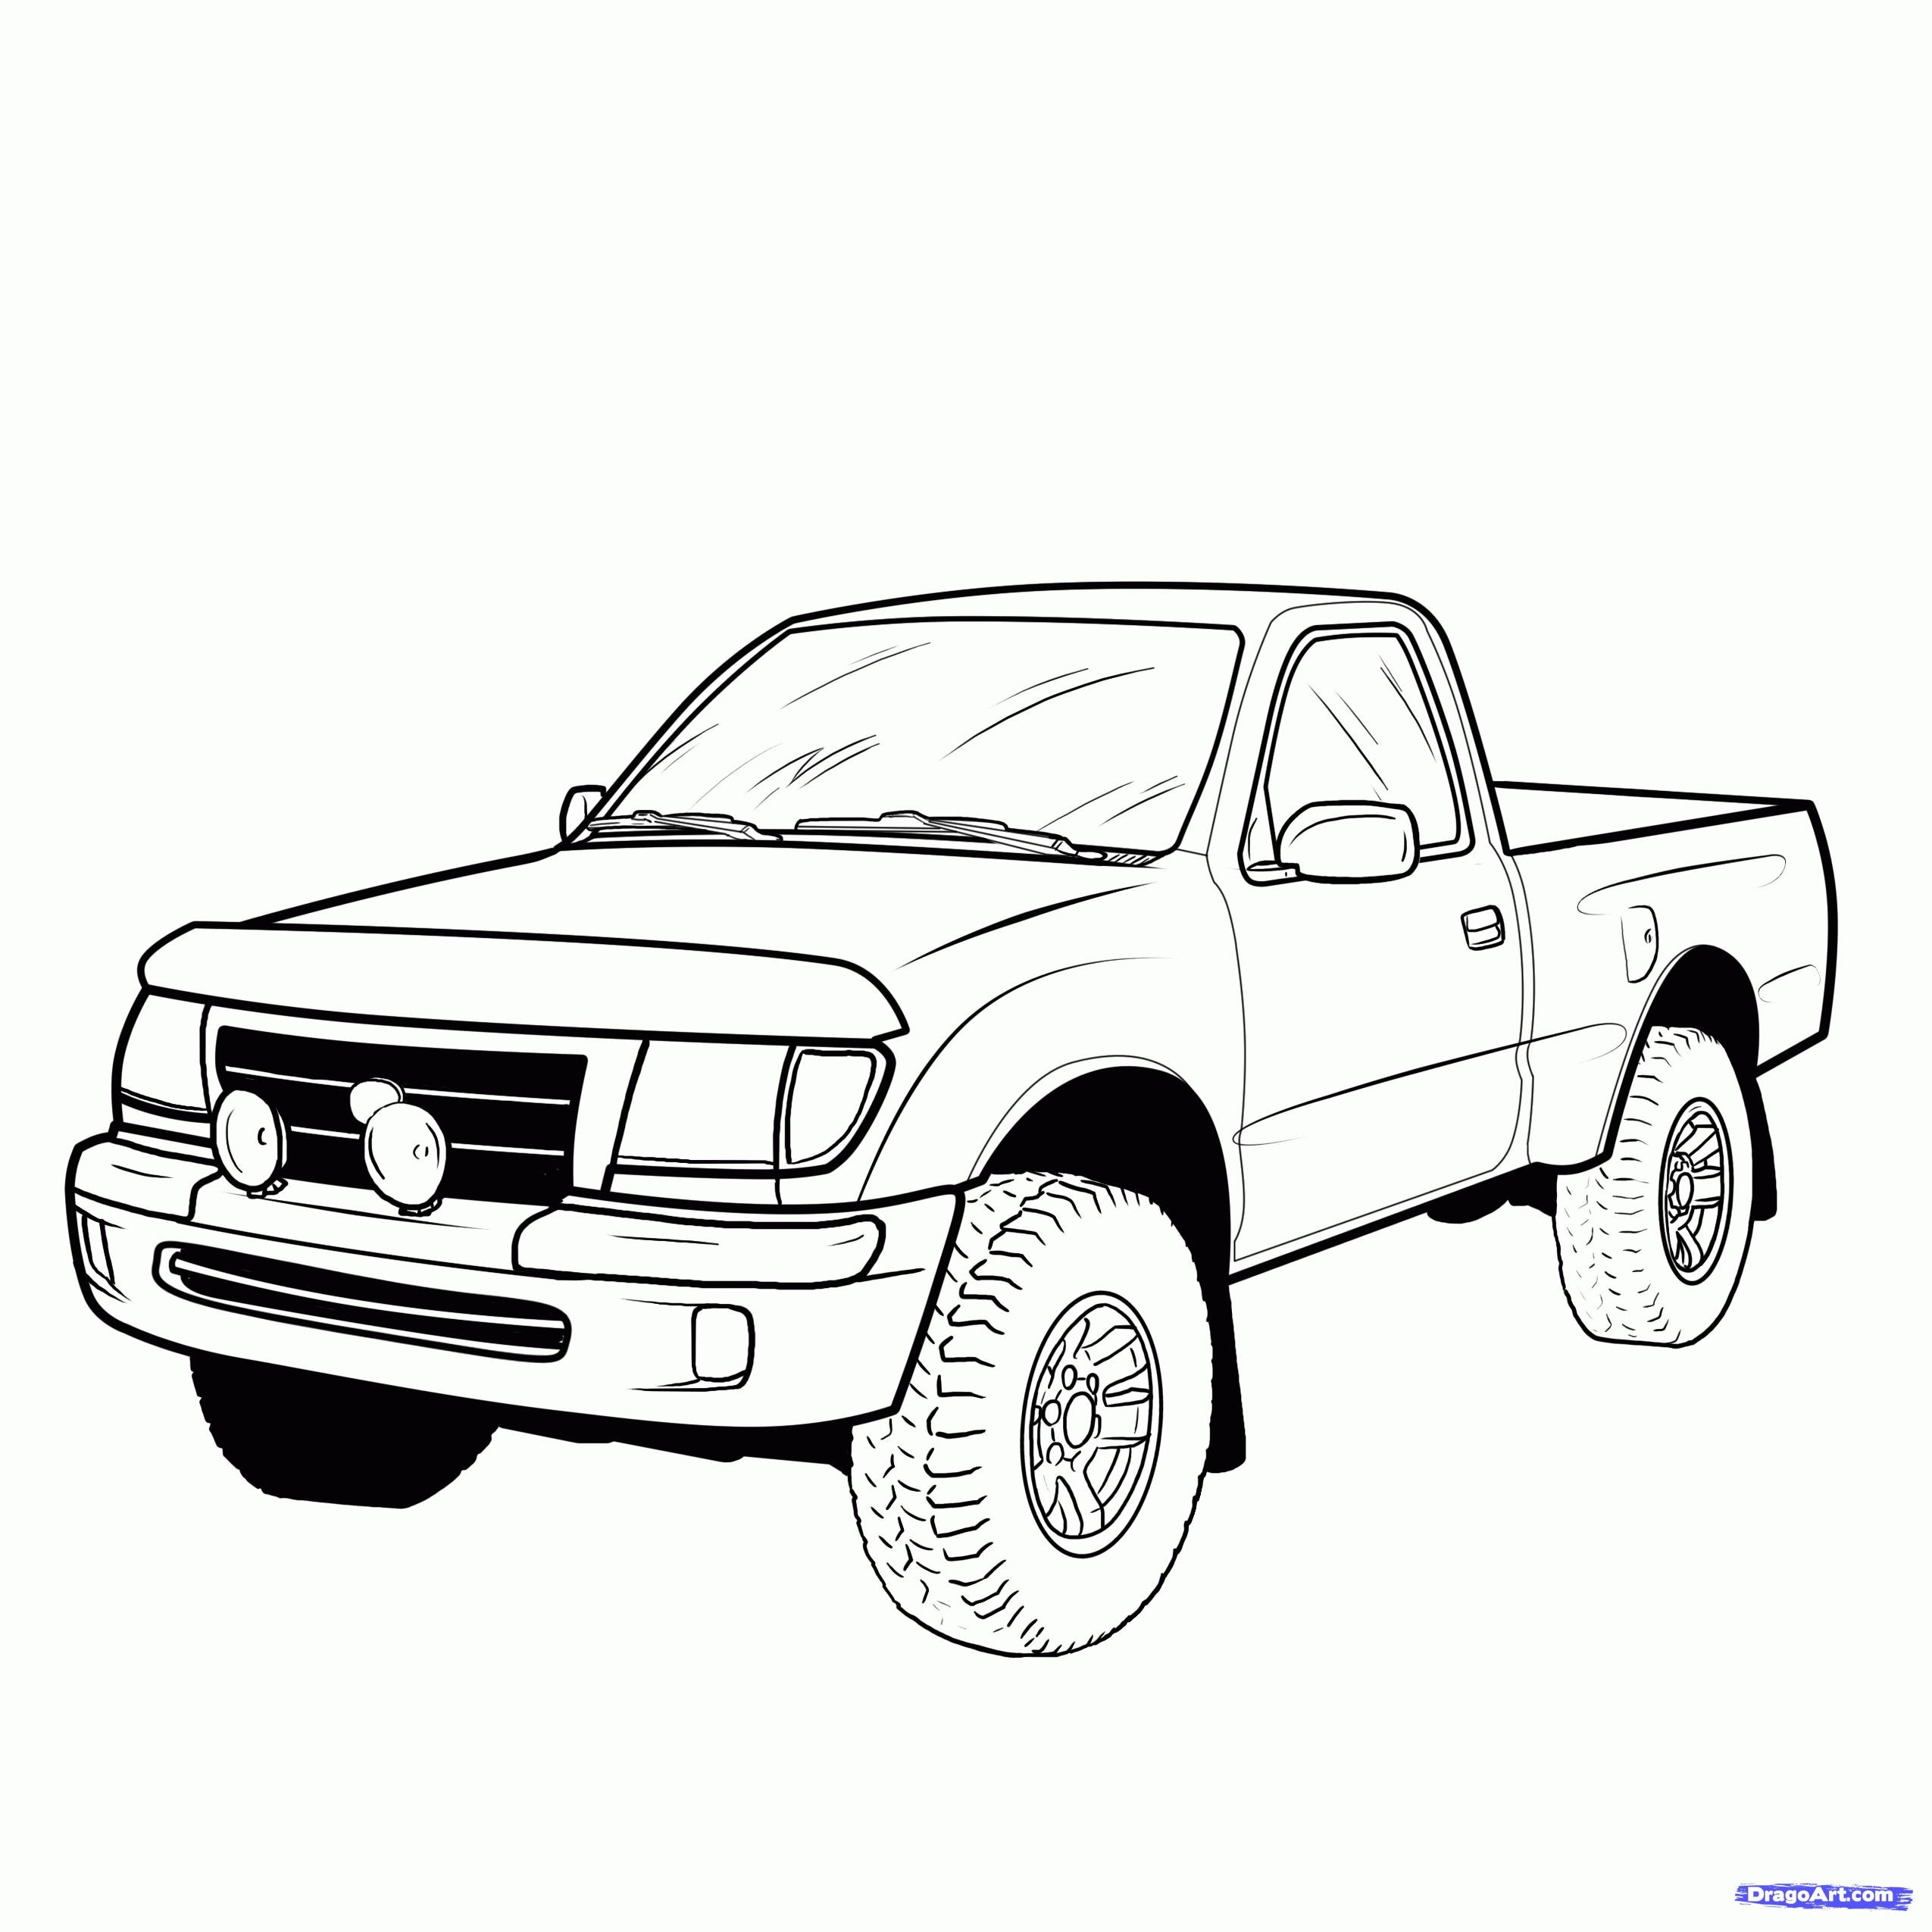 2550x2550 Pickup Truck Outline Drawing Maxi Truck